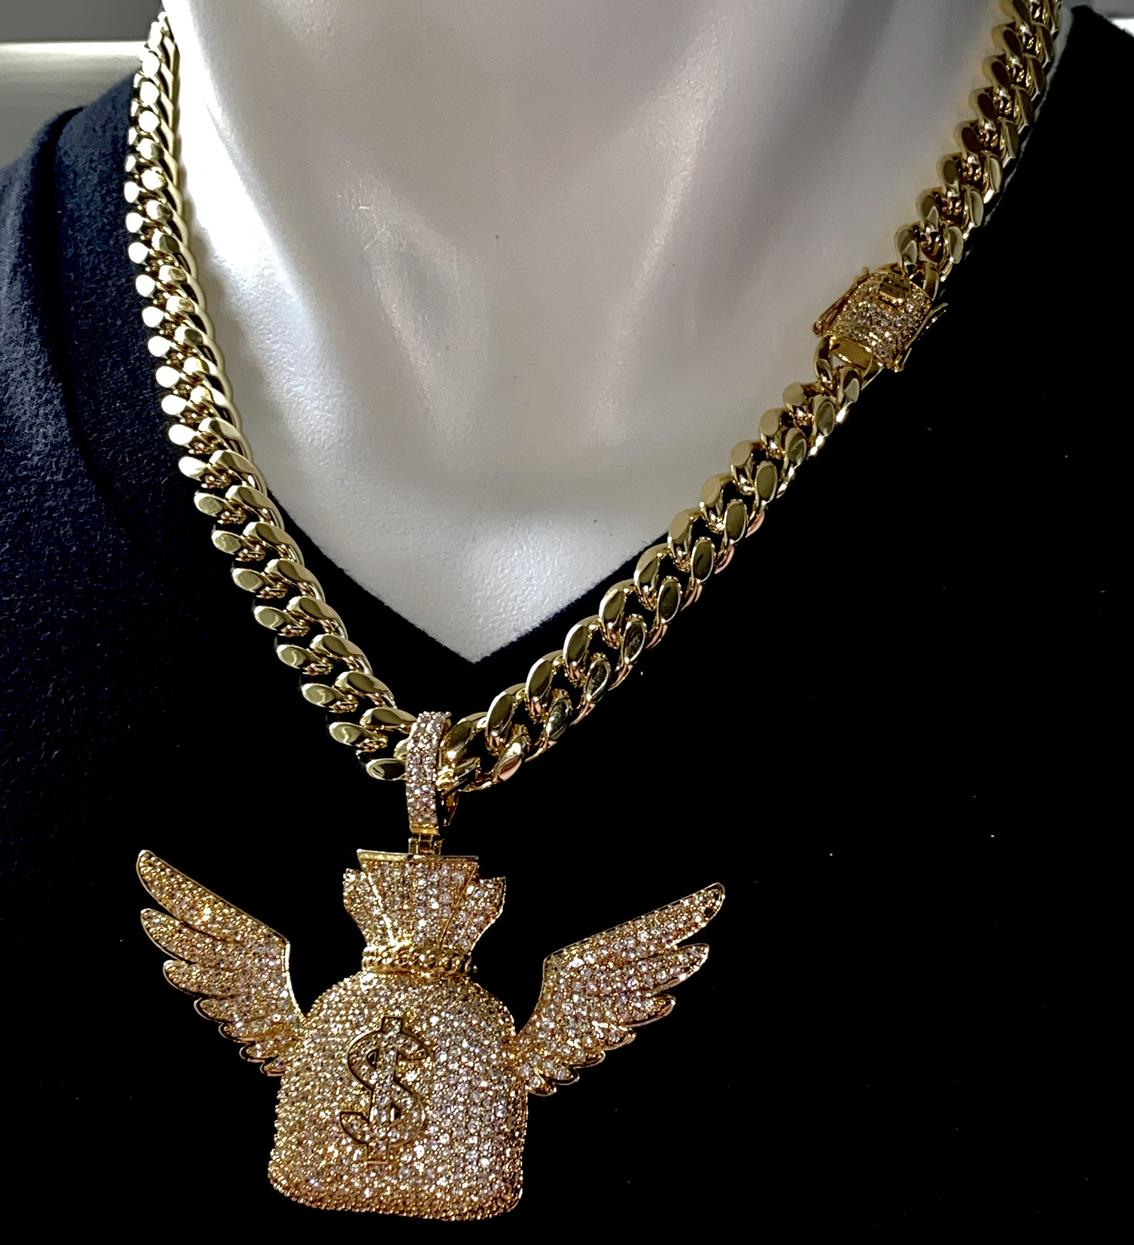 Best Hip Hop Bling 2021 14k Gold 5X Layered Iced Money Bag Pendant with Miami Cuban Chain Set